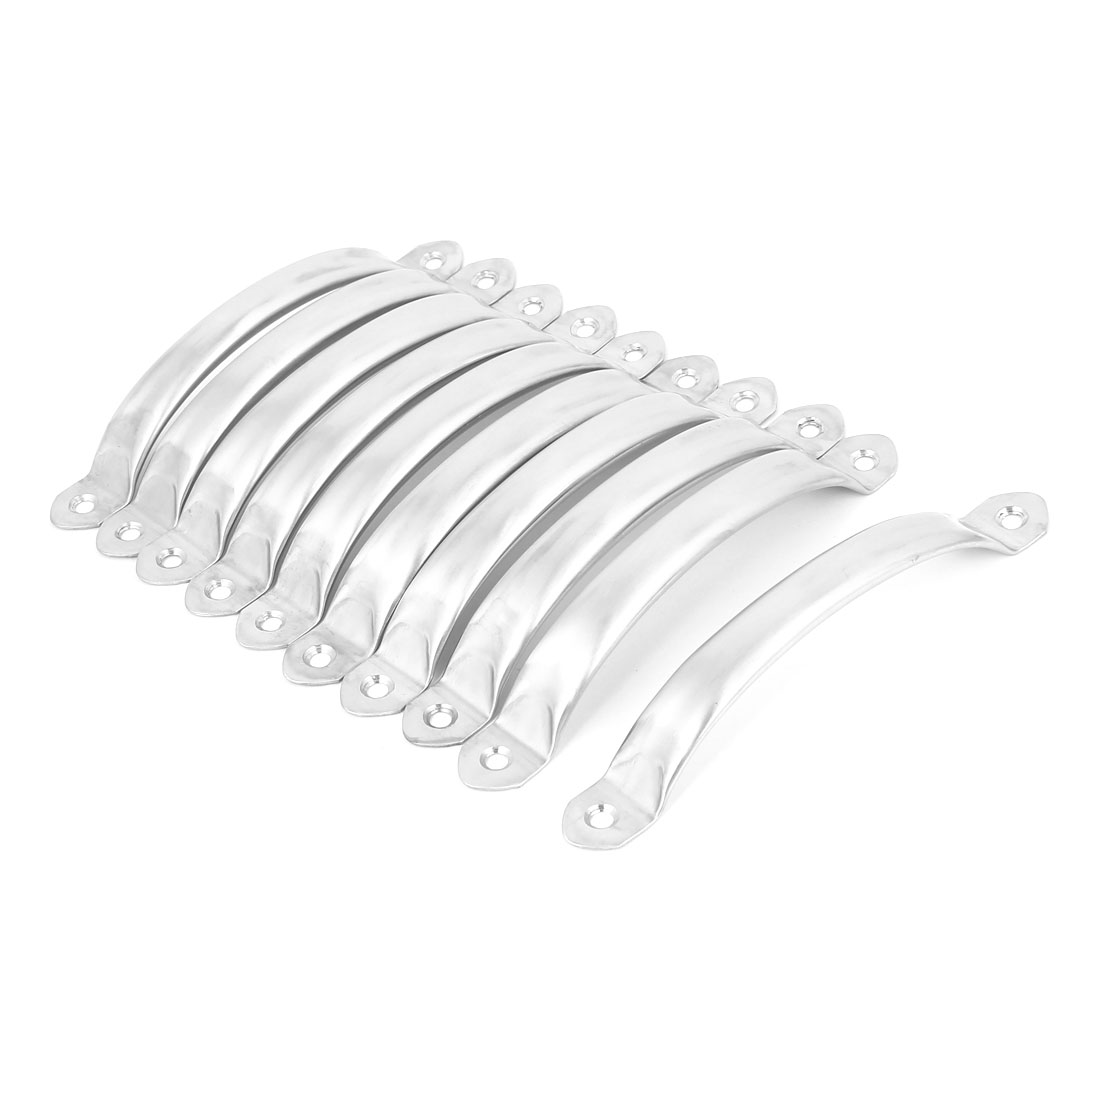 Closet Dresser Stainless Steel Arch Style Pull Handle Silver Tone 150x18x24mm 20pcs